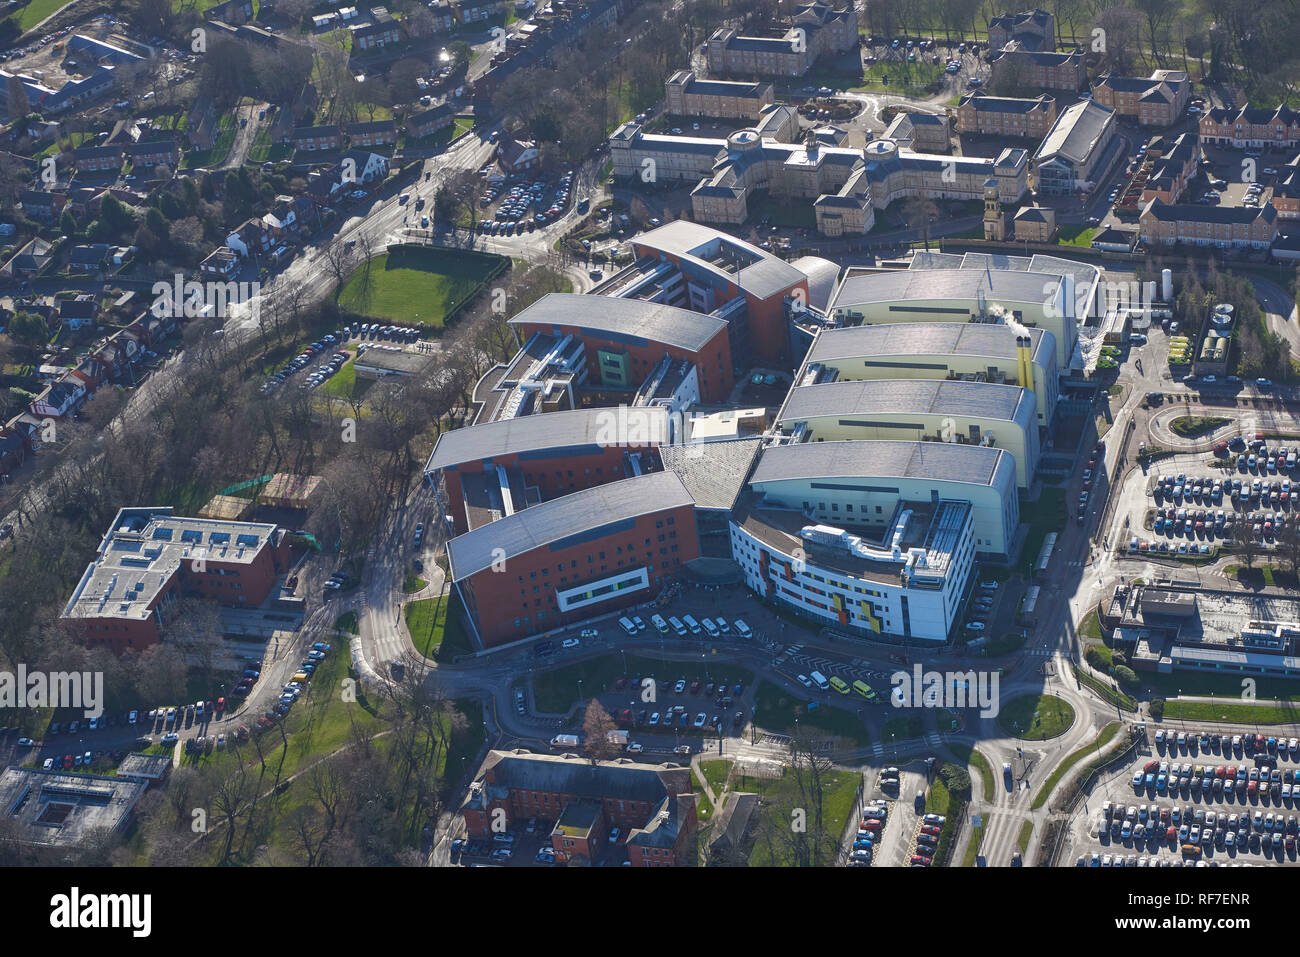 An aerial view of Pinderfields Hospital Wakefield, built under PFI, West Yorkshire, Northern England, UK - Stock Image